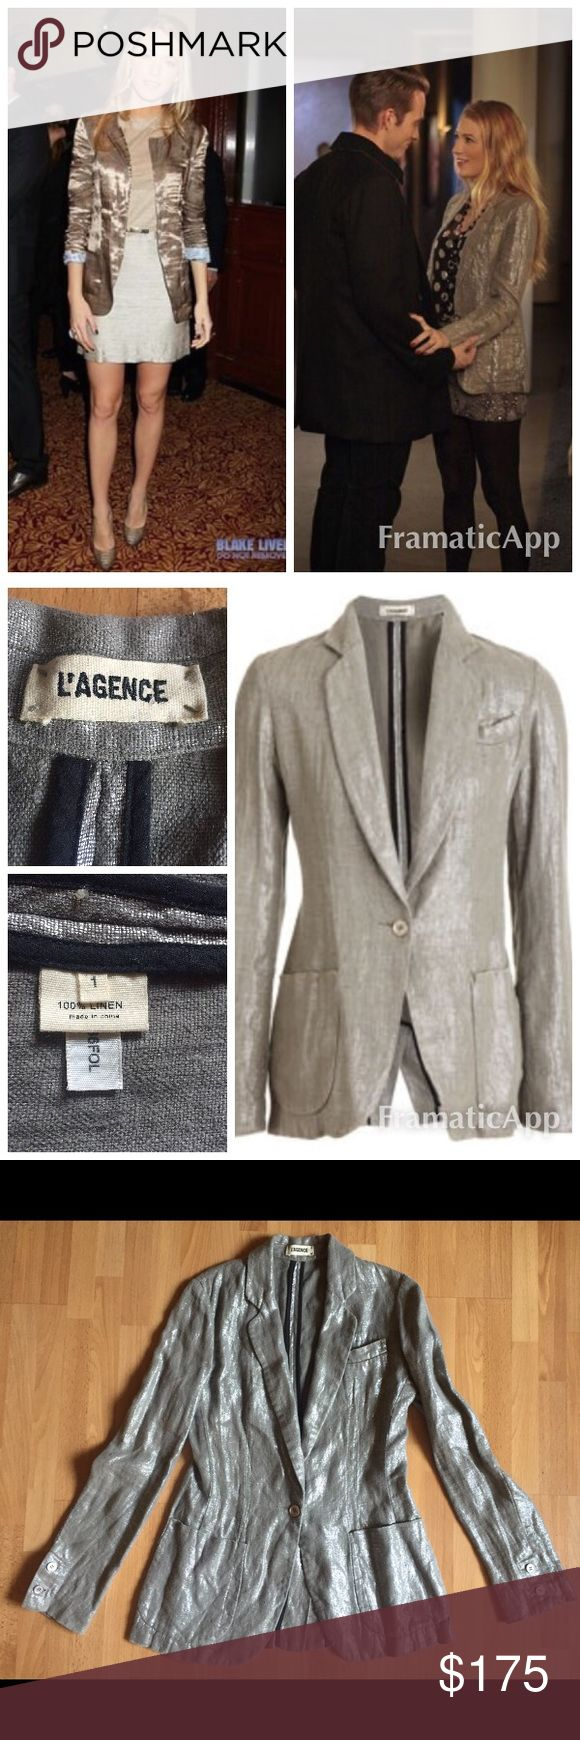 """L'Agence Silver Foil Blazer $495 XS celeb fave! L'agence Silver Foil Blazer $475 retail. Perfect condition with no flaws! Celebrity favorite as seen on Mila Kunis, Blake Lively and others. Sold out! Size 1 is XS.   Measurements: 17"""" armpit to armpit 26"""" top of shoulder to bottom hem  Linen lurex single-button blazer with notched lapels, welt chest pocket and two patch pockets. Distressed edges. Center vent. Available in Light Brown. Imported. Linen. Dry clean. L'AGENCE Jackets & Coats…"""